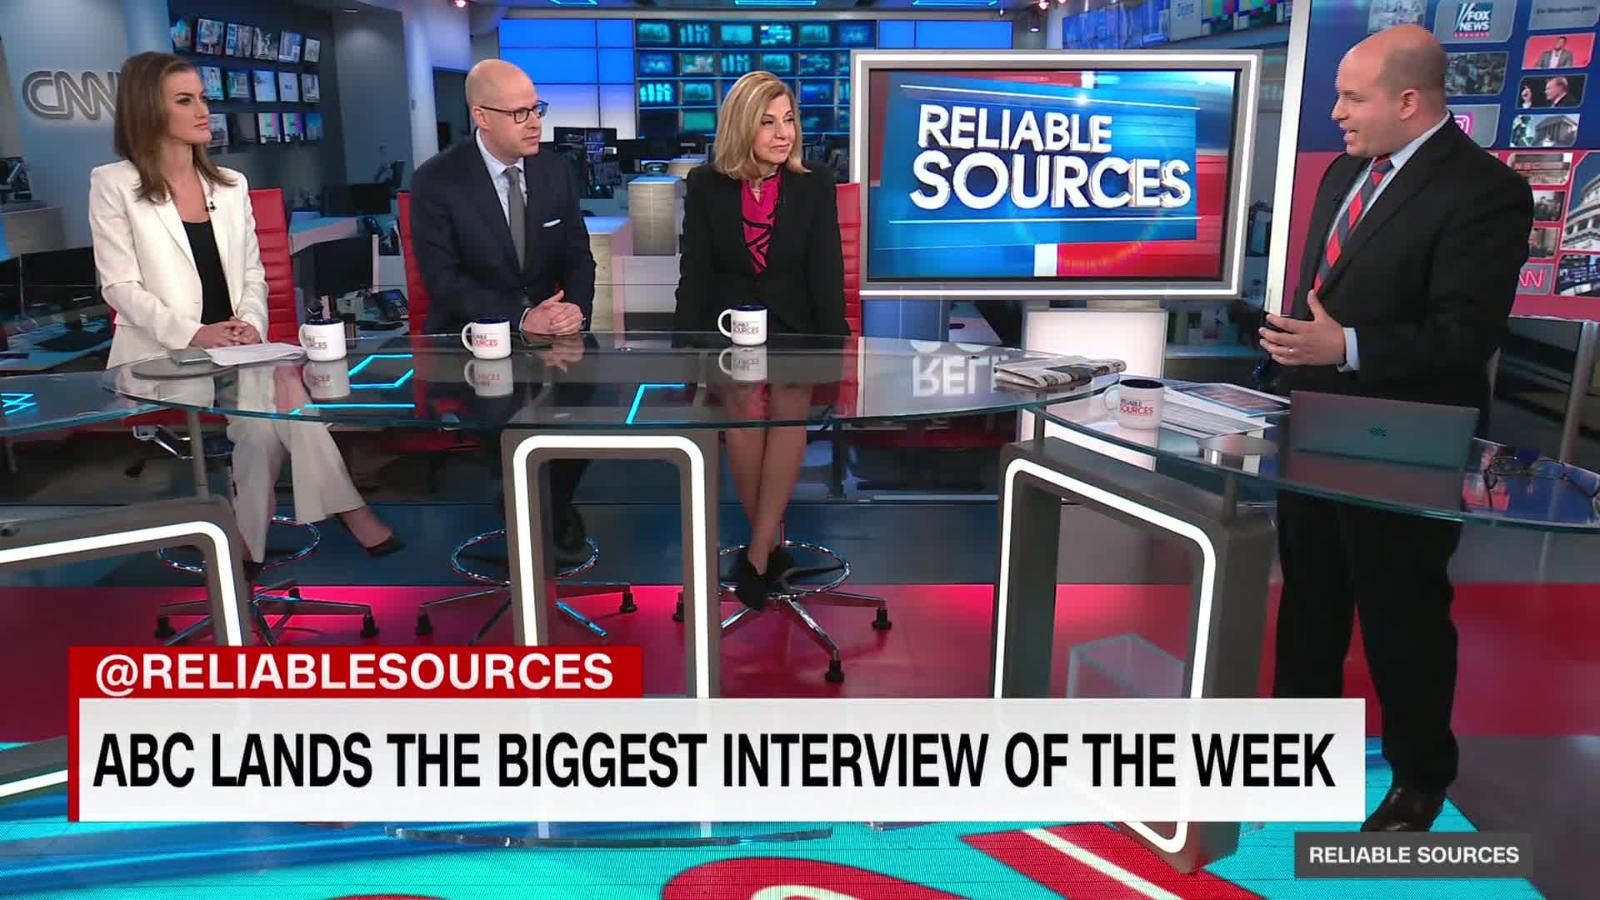 Contrasting Trump's interviews on ABC and Fox Brian Stelter says